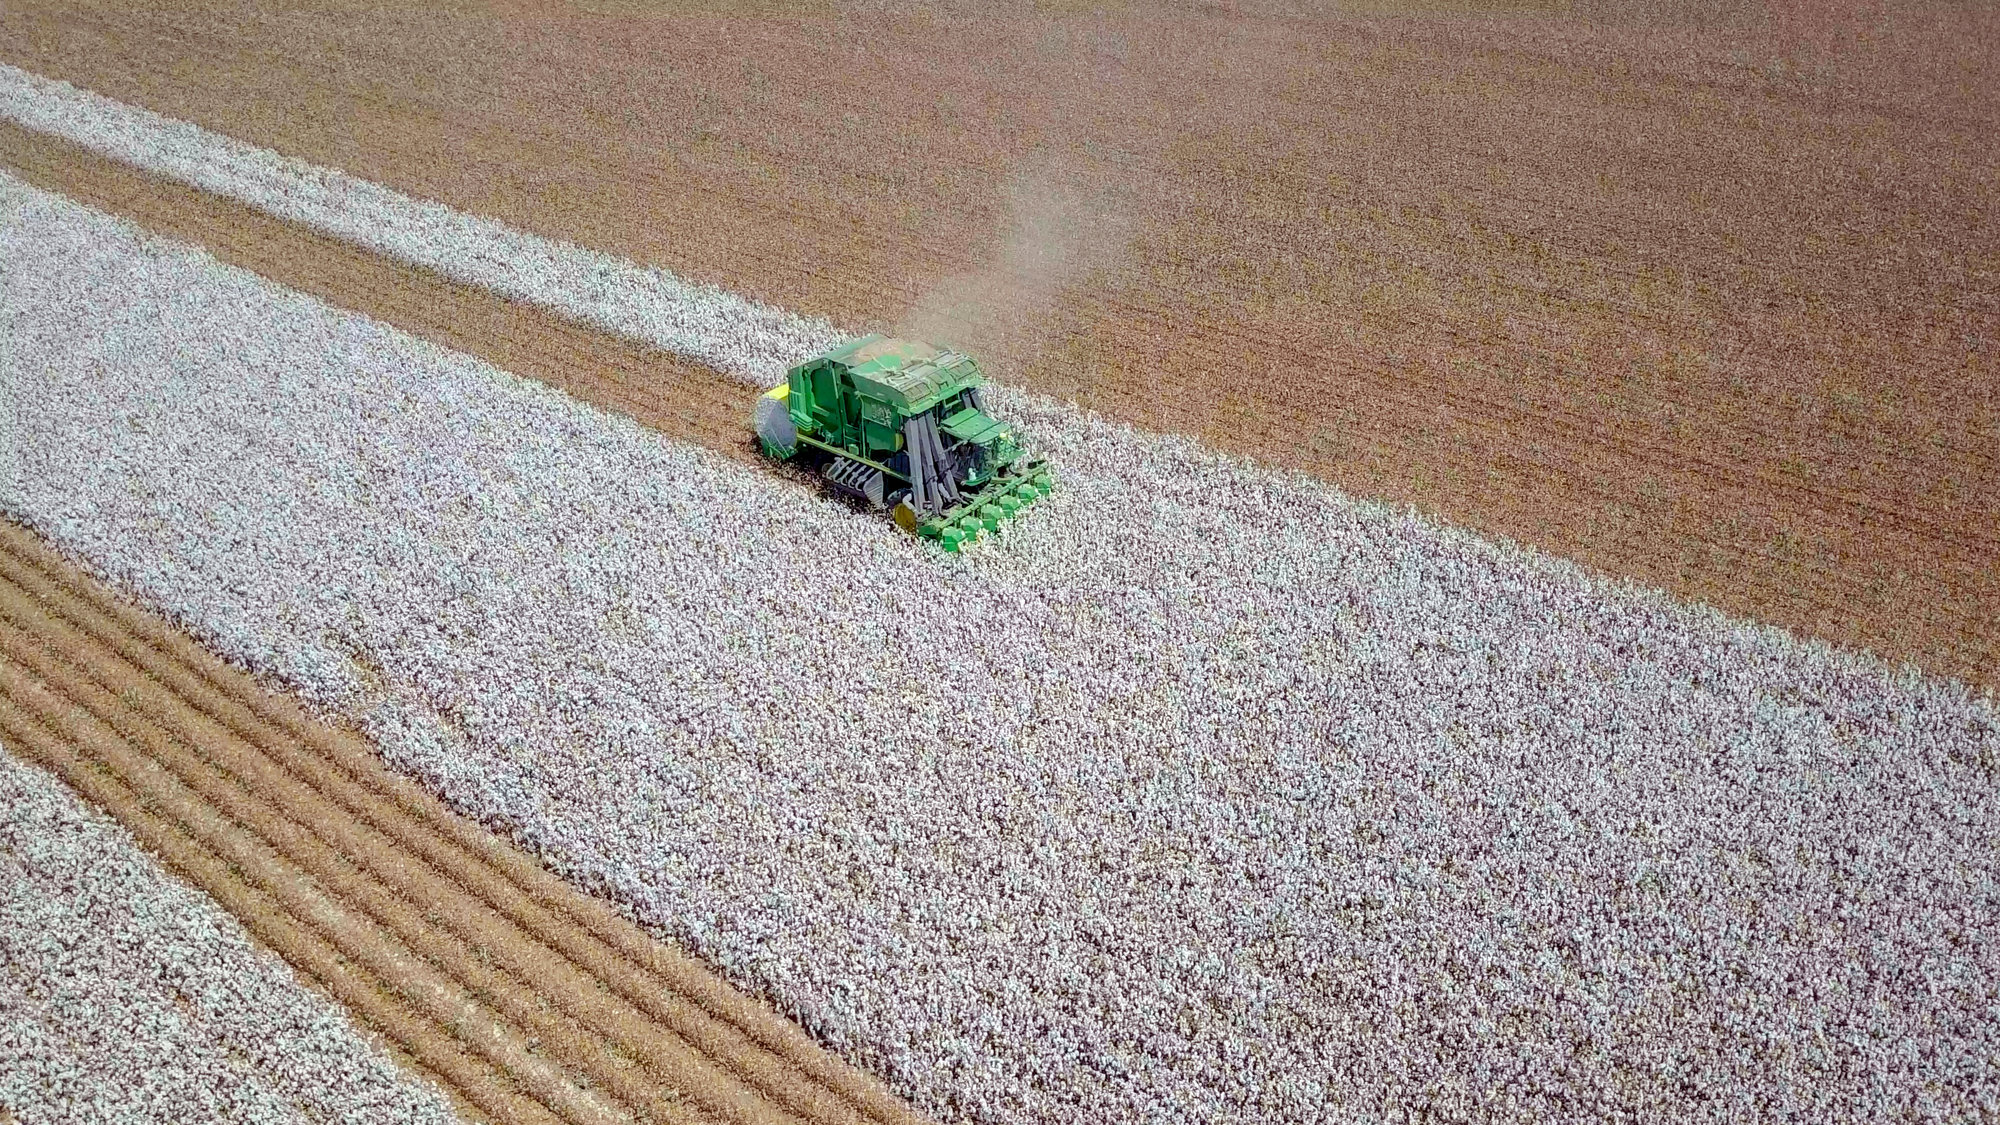 Cotton being harvested seen from the air